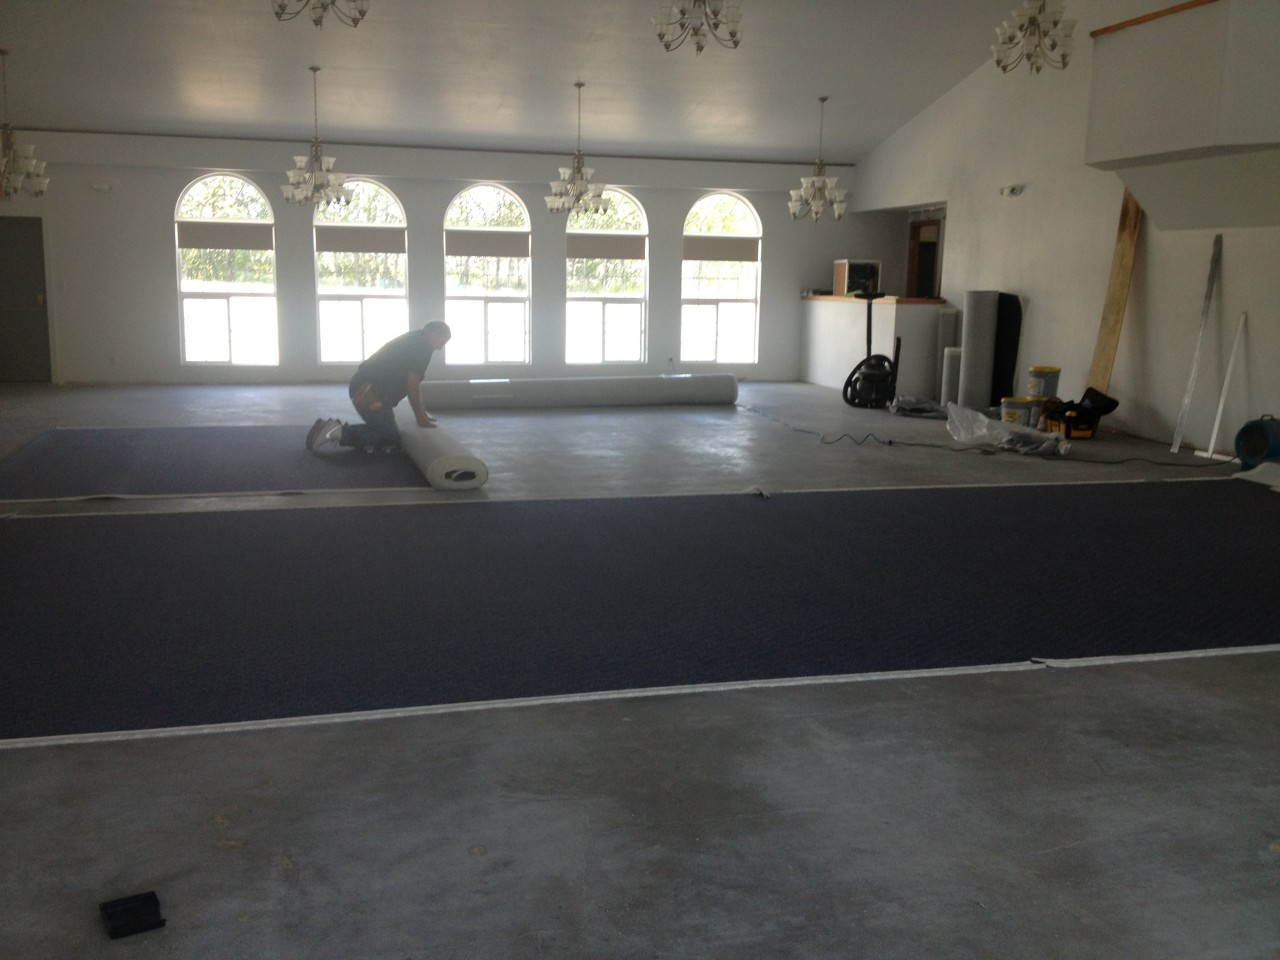 16. The new carpet is finally here